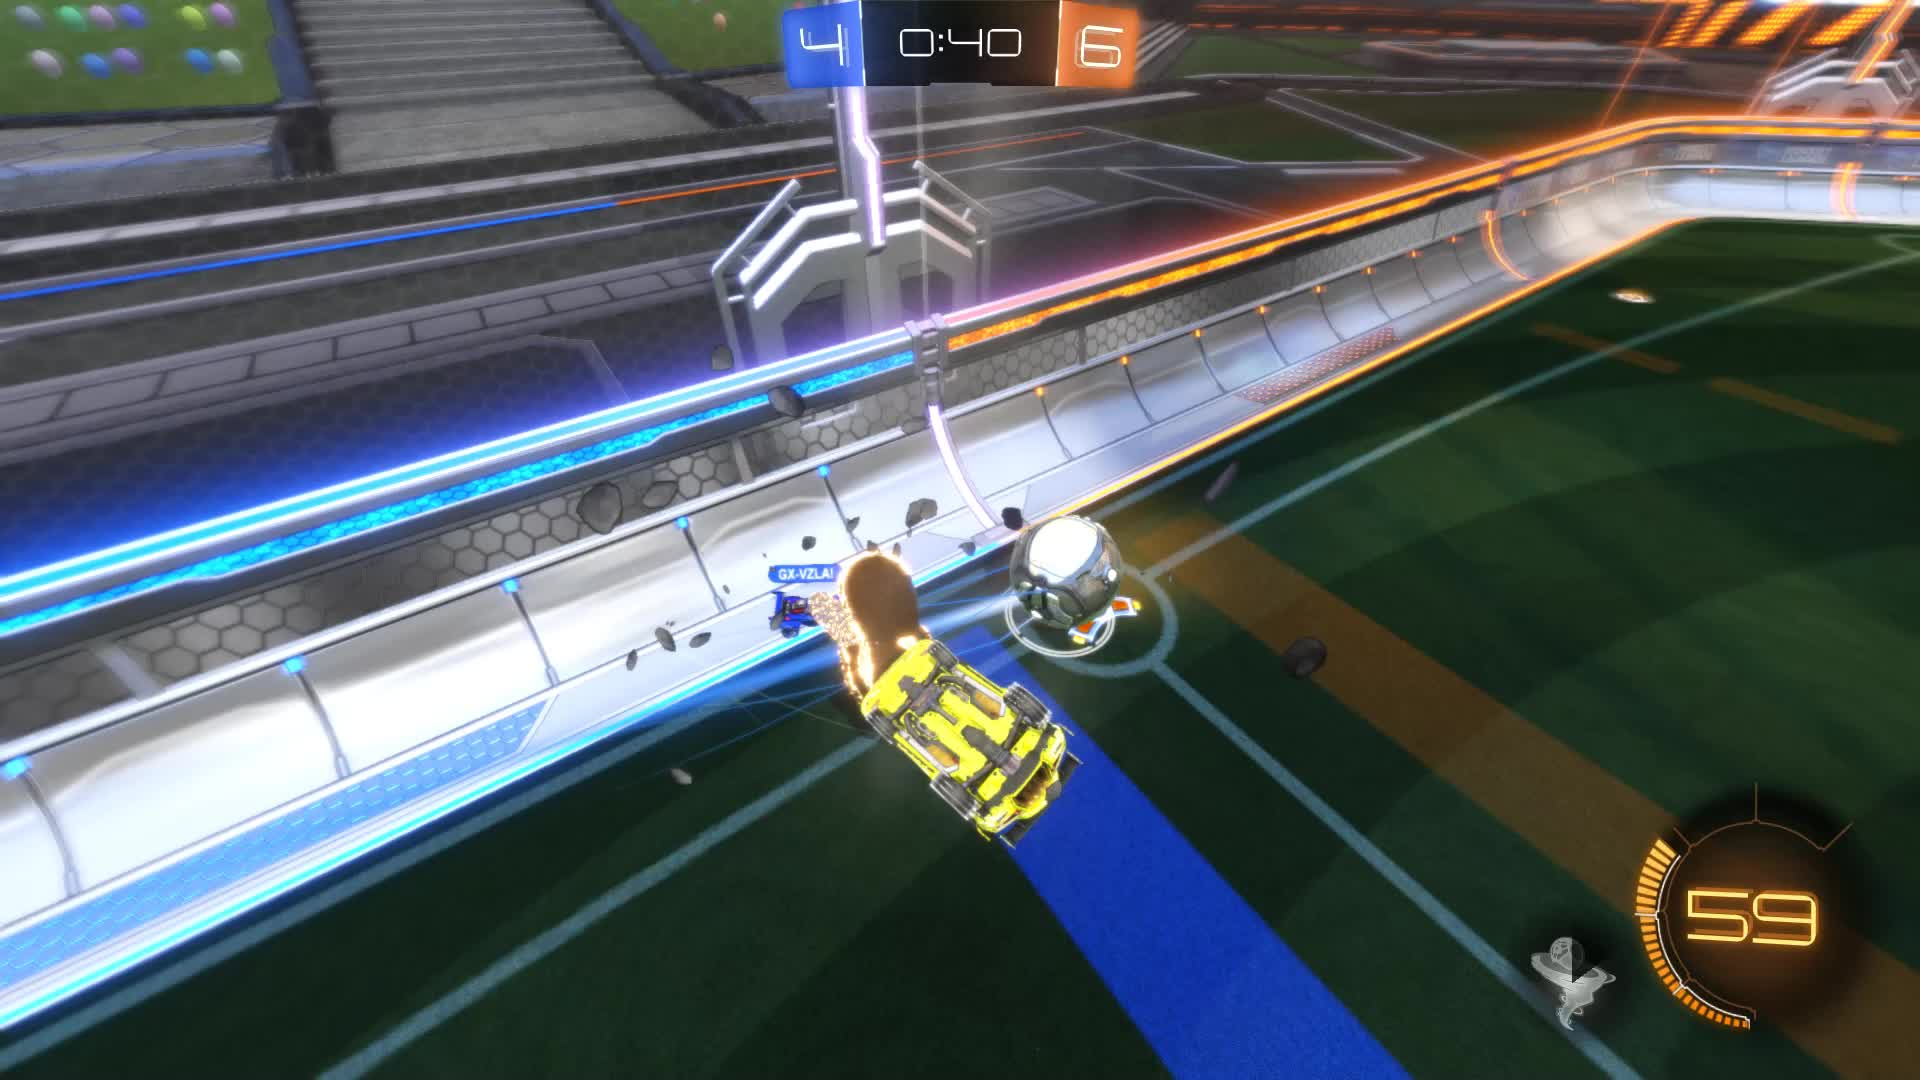 Avaki, Gif Your Game, GifYourGame, Rocket League, RocketLeague, Shot, Shot 18: Gx-VZLA! GIFs